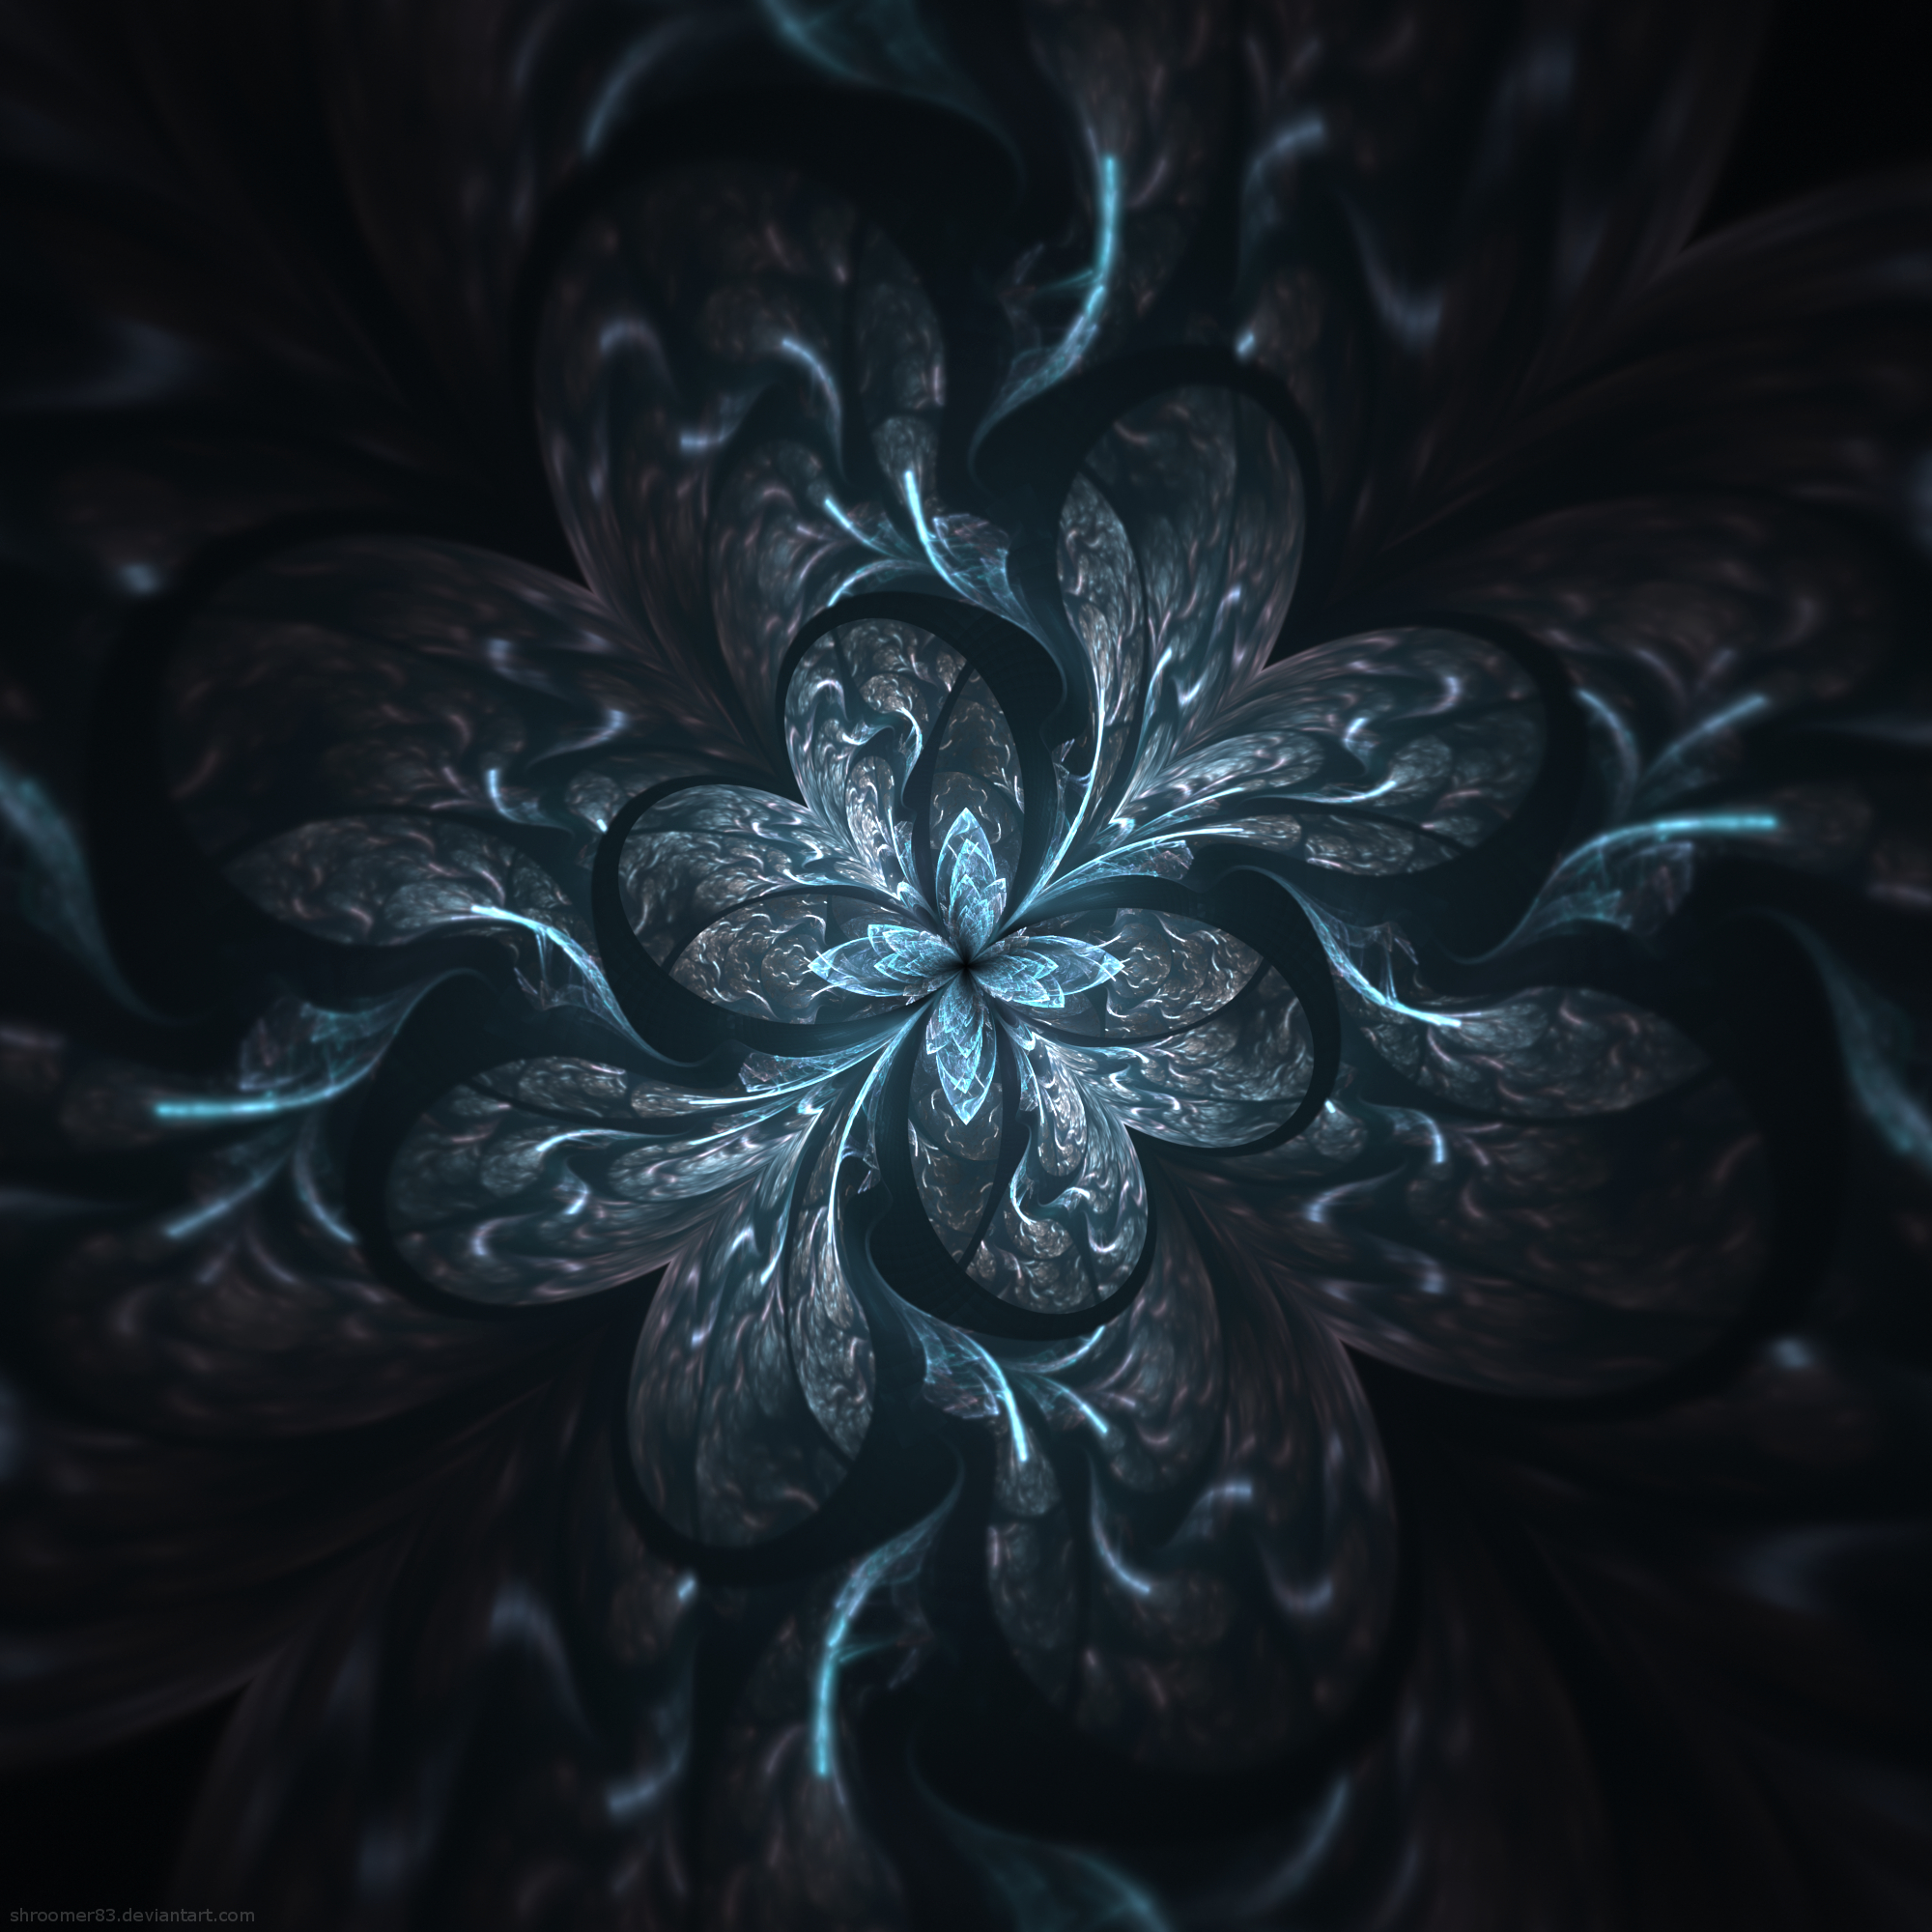 122848 download wallpaper Abstract, Fractal, Pattern, Digital screensavers and pictures for free